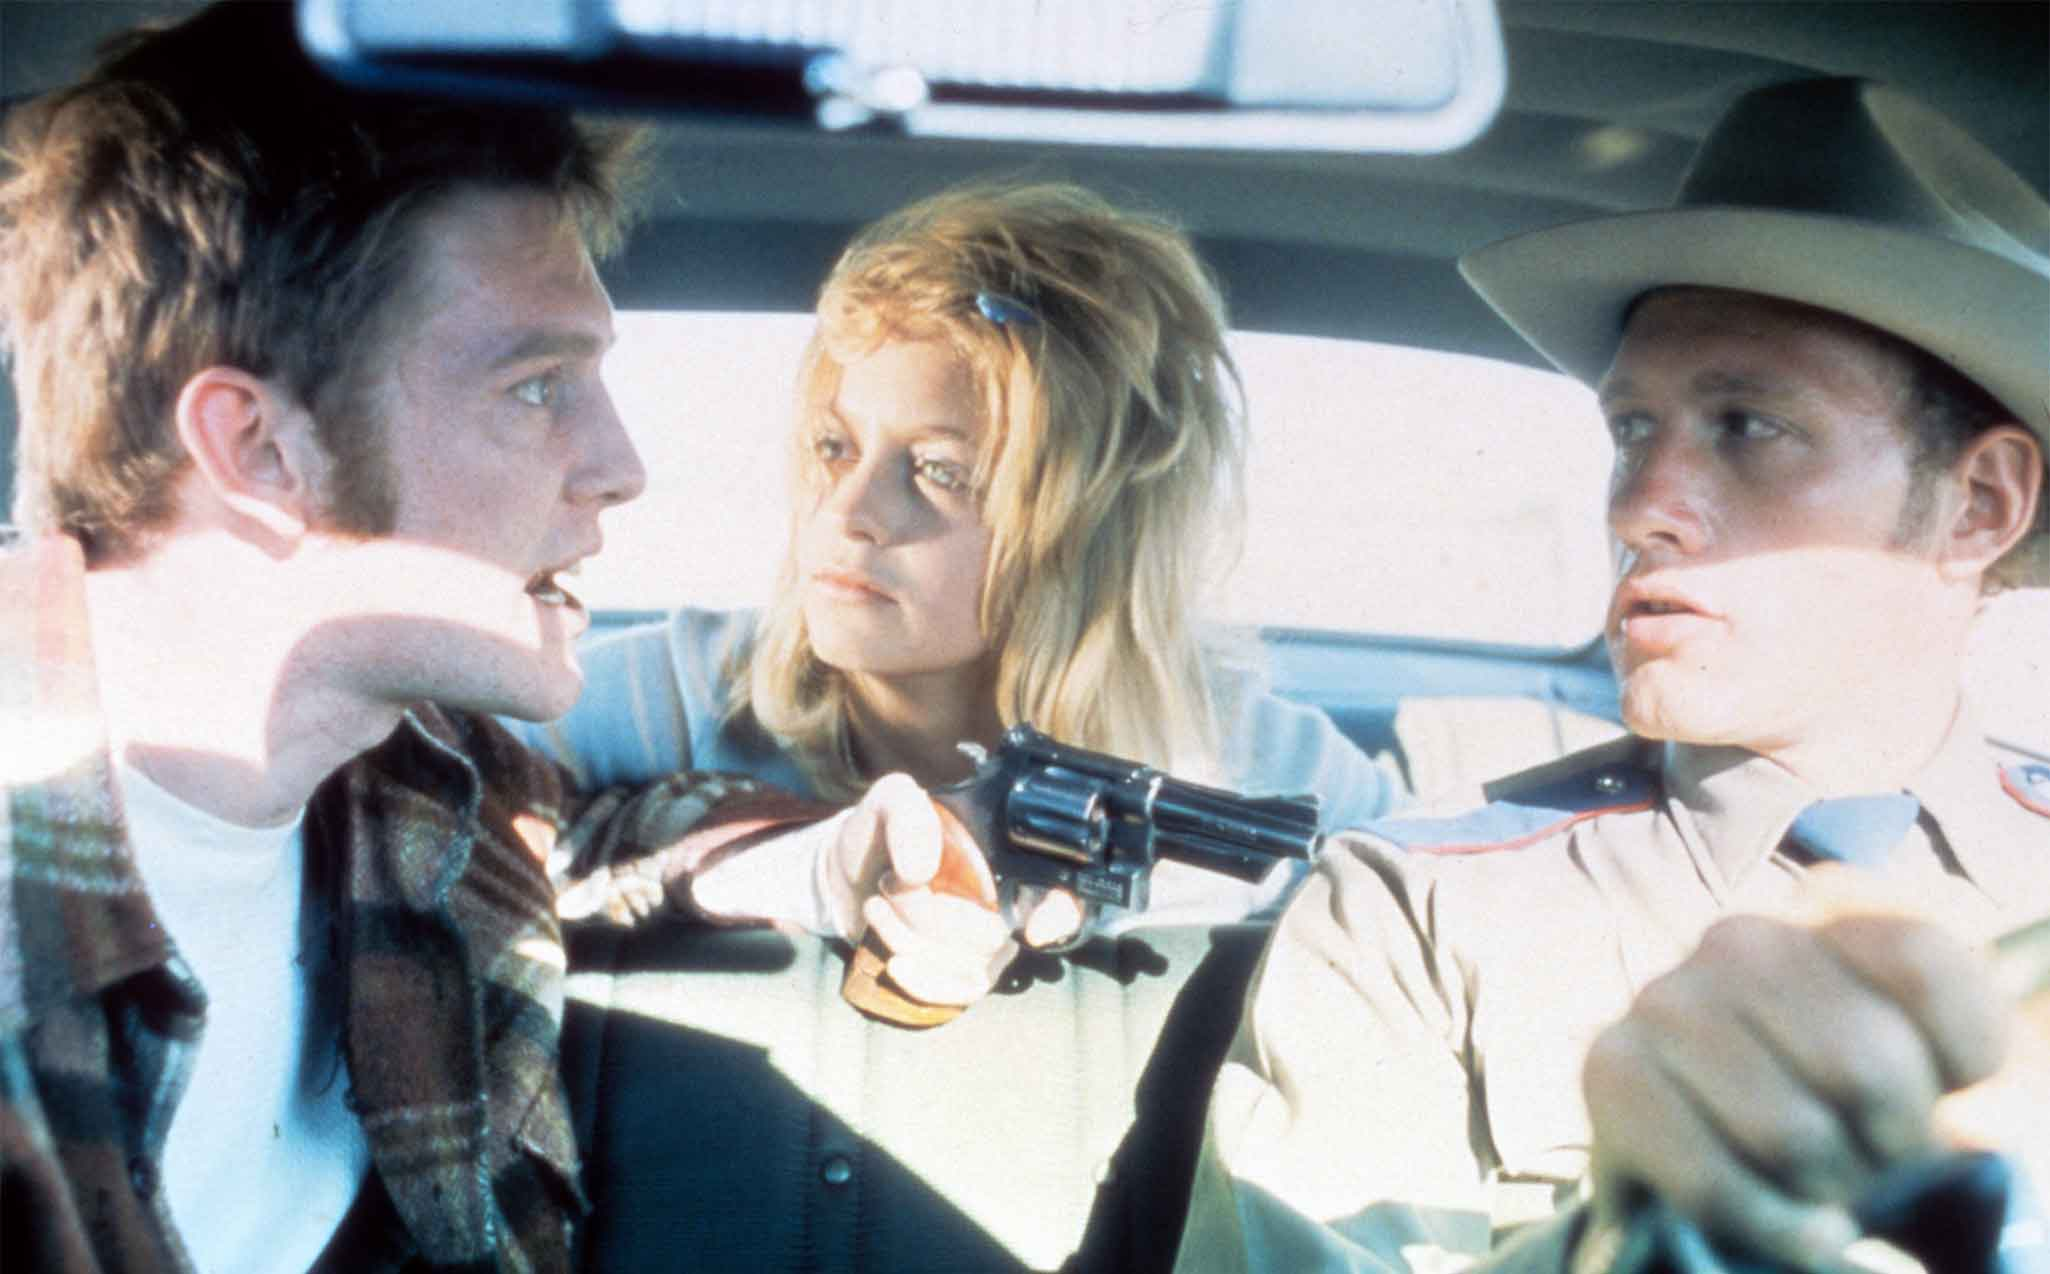 The Sugarland Express (1974) Directed by Steven Spielberg Shown: William Atherton, Goldie Hawn, Michael Sacks